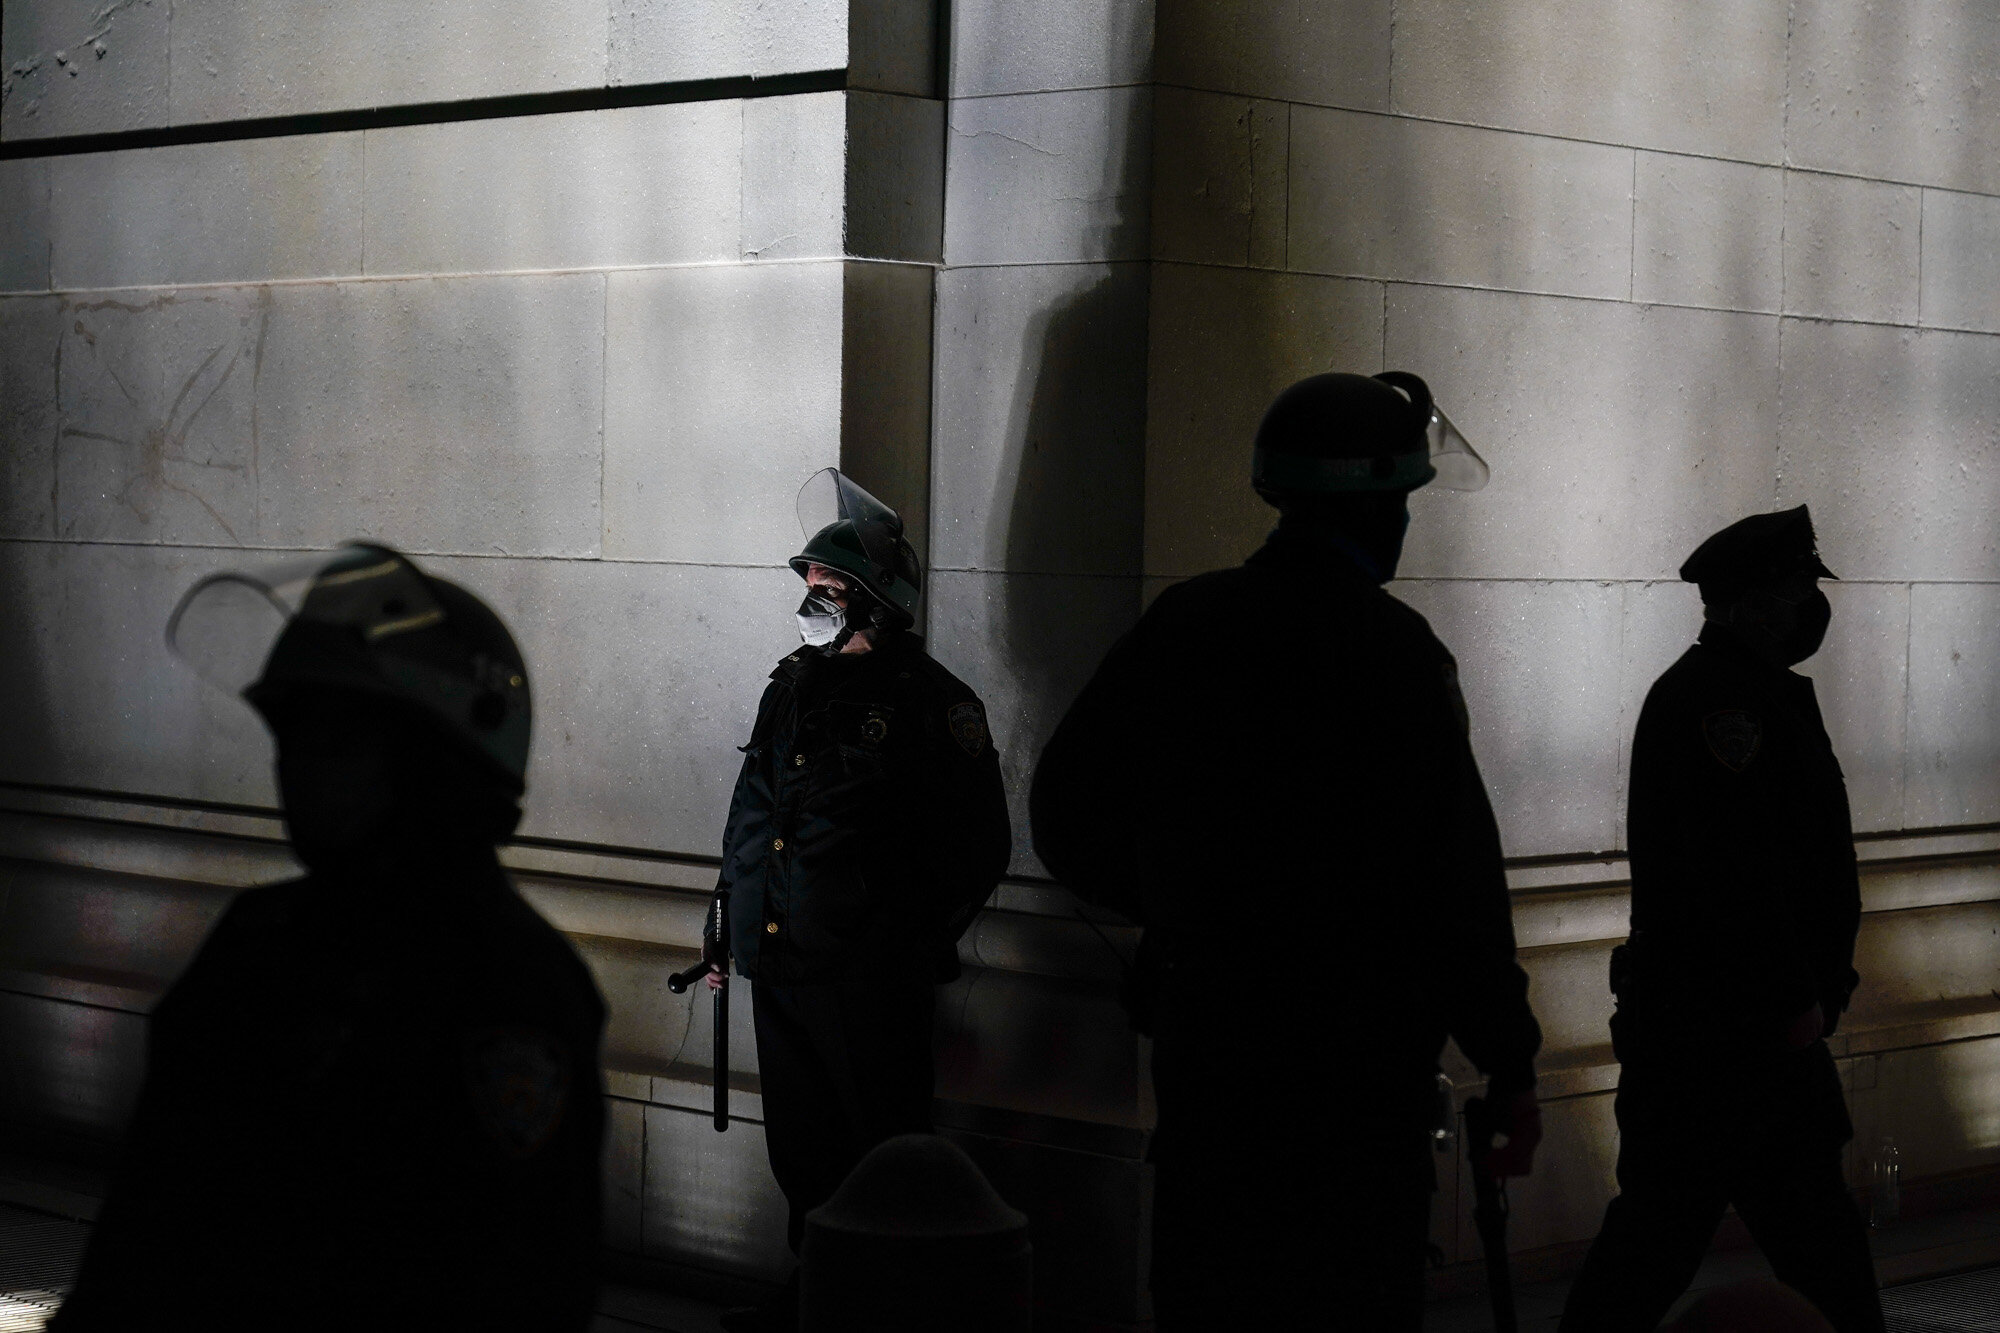 New York Police officers block off the north entrance to Washington Square Park after facing off with protestors, on Nov. 4, 2020, in New York, the day after the U.S. general election.  (AP Photo/Seth Wenig)